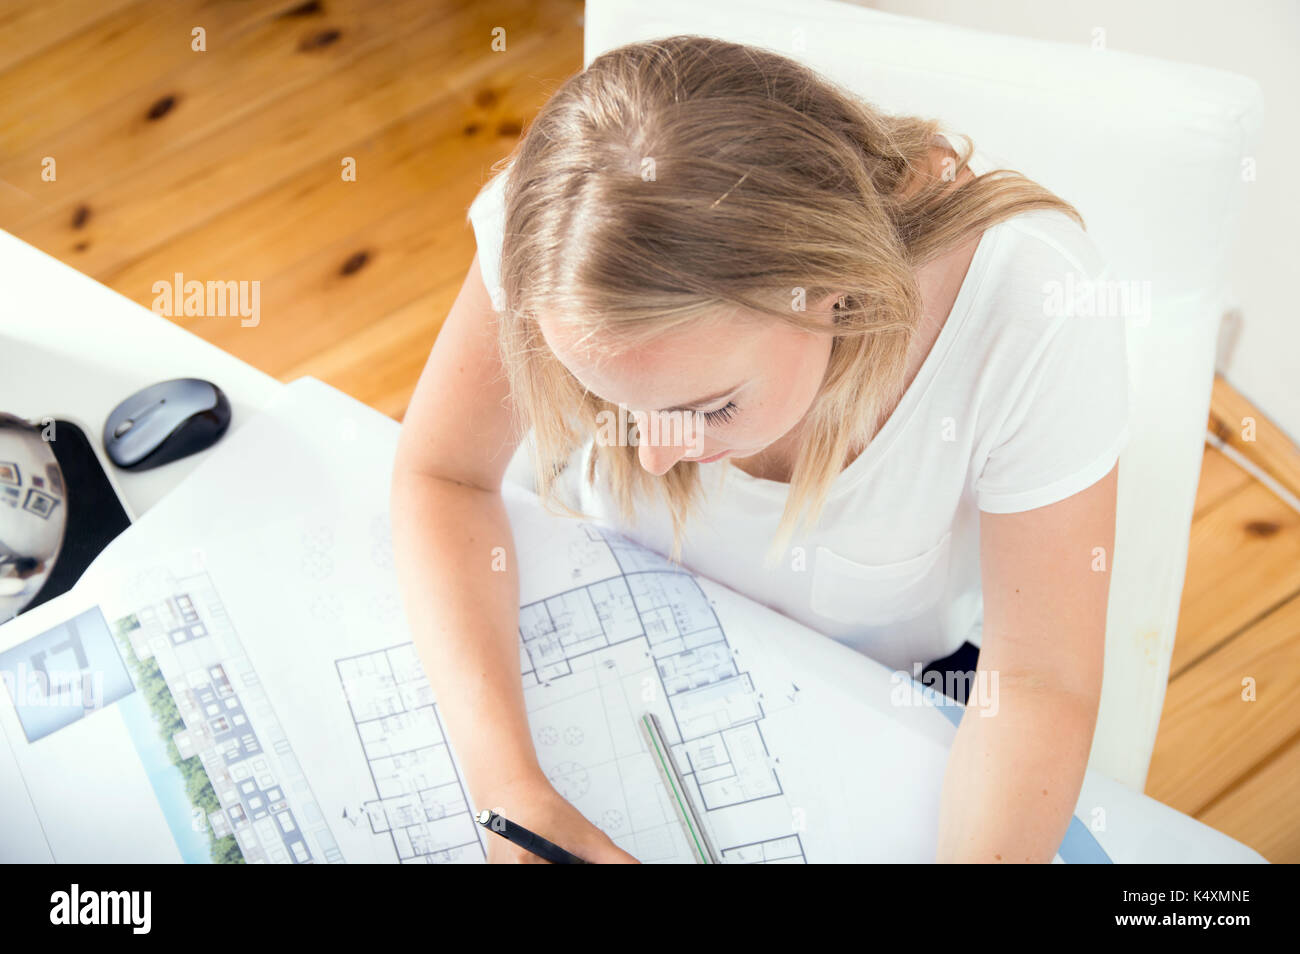 Top view at architect's desk where architect is working - Stock Image